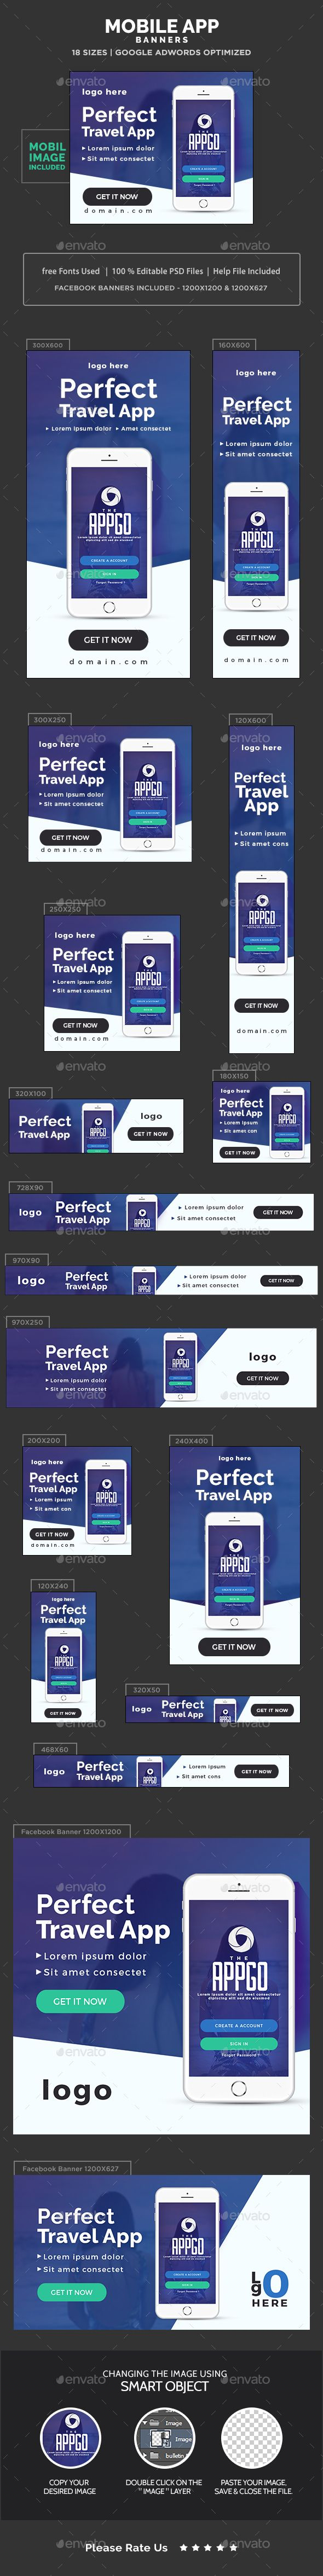 App Store Banners Design Template - Banners & Ads Web Elements Template PSD. Download here: https://graphicriver.net/item/app-store-banners/17741129?s_rank=1&ref=yinkira                                                                                                                                                                                 More